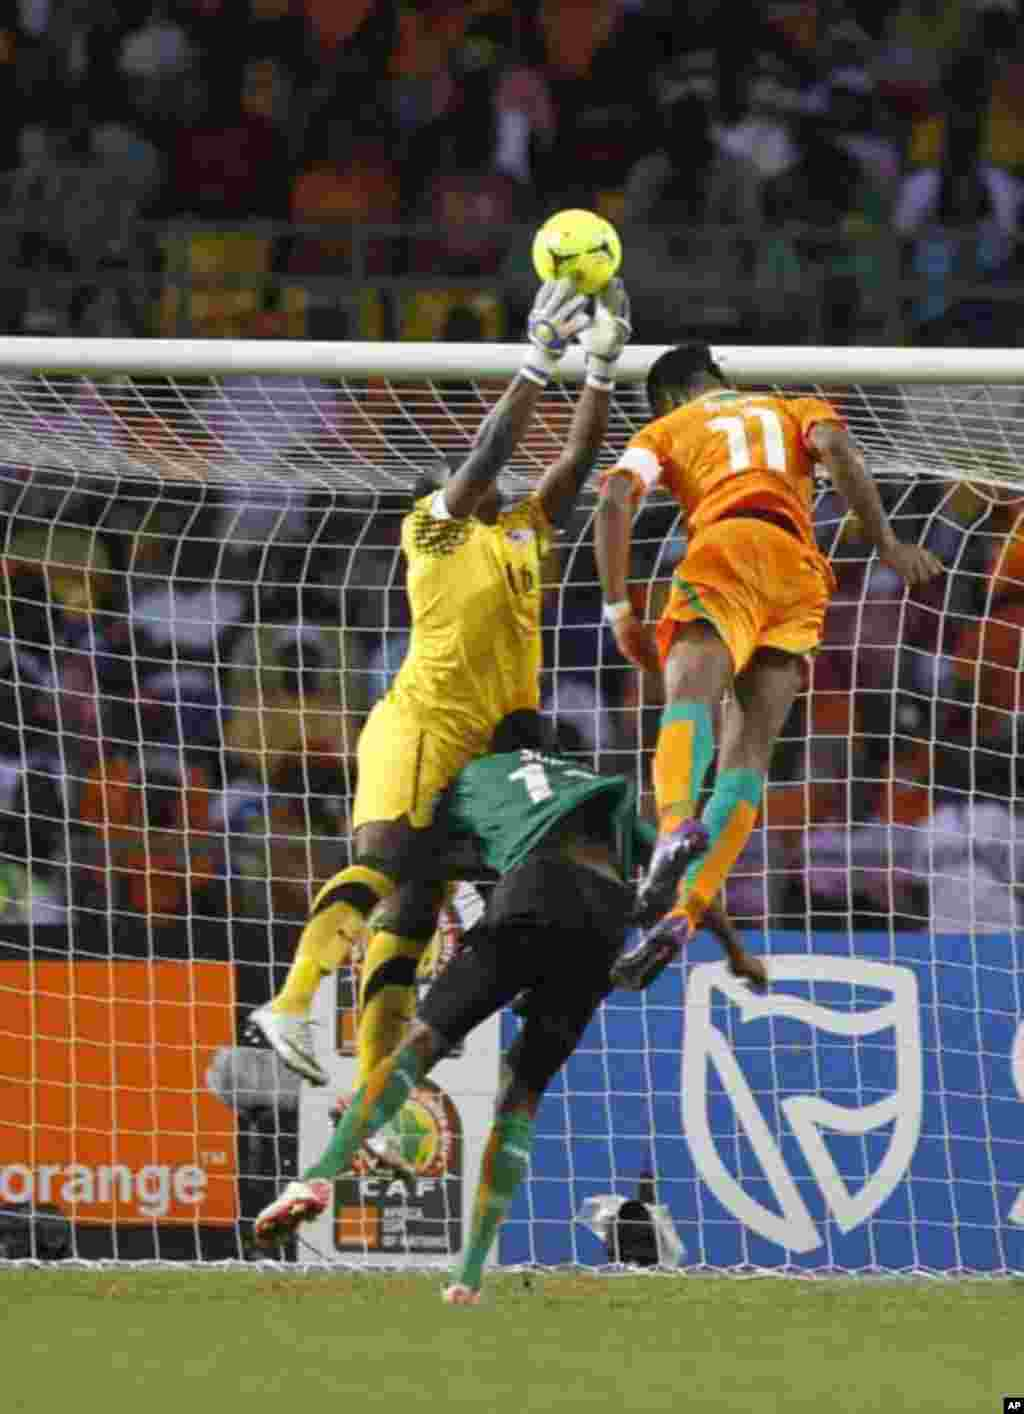 Zambia's goalkeeper Kennedy Mweene makes a save against Ivory Coast's Didier Drogba during their African Nations Cup final soccer match at the Stade De L'Amitie Stadium in Gabon's capital Libreville February 12, 2012.